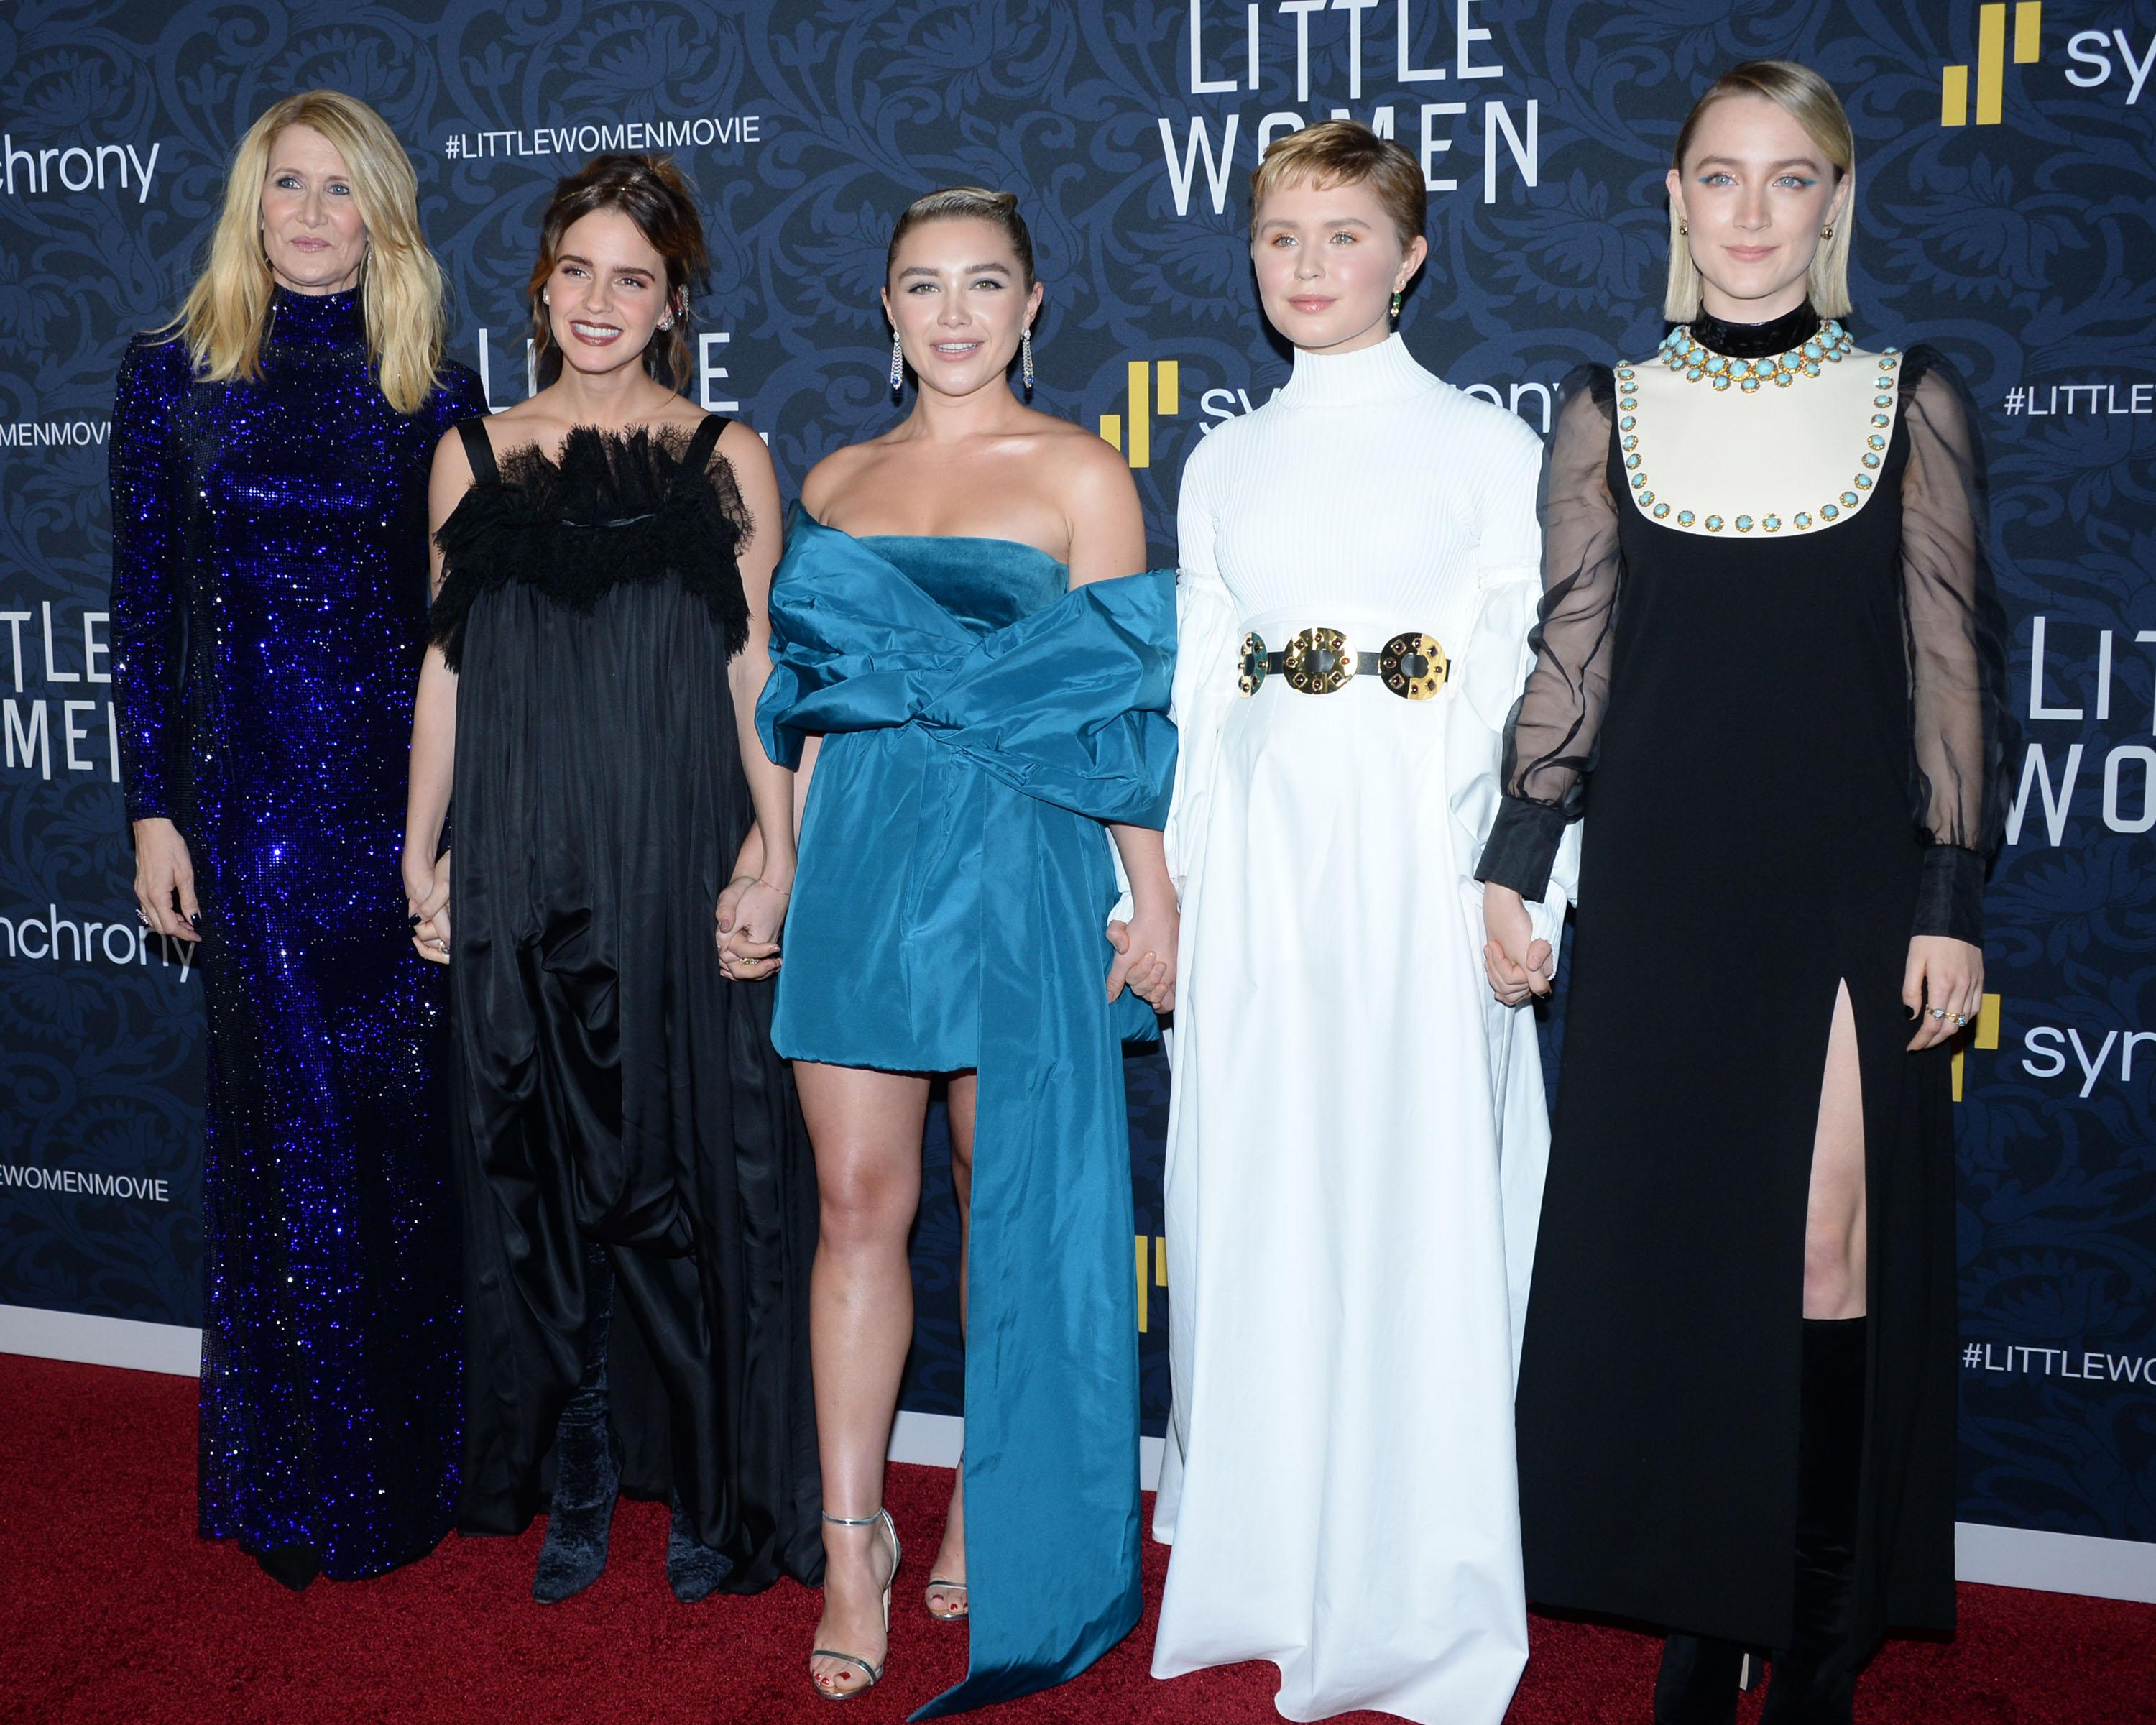 "NEW YORK, NEW YORK - DECEMBER 7: Laura Dern, Emma Watson, Florence Pugh, Eliza Scanlen, Saoirse Ronan attend ""Little Women"" World Premiere on December 7, 2019 at Museum of Modern Art in New York City. (Photo by Paul Bruinooge/Patrick McMullan via Getty Images)"